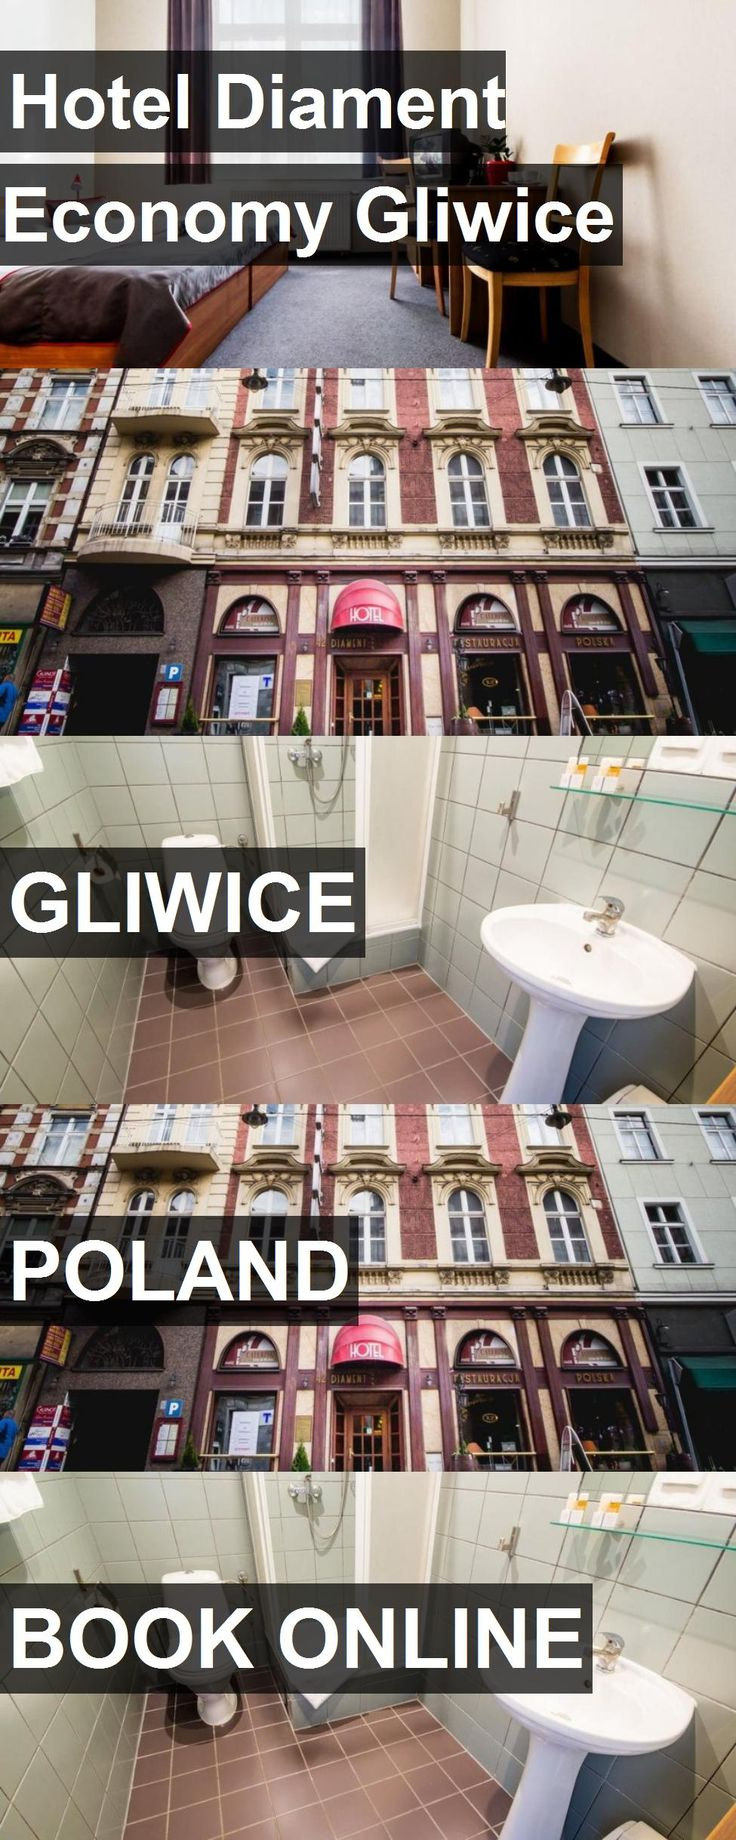 Hotel Hotel Diament Economy Gliwice in Gliwice, Poland. For more information, photos, reviews and best prices please follow the link. #Poland #Gliwice #HotelDiamentEconomyGliwice #hotel #travel #vacation